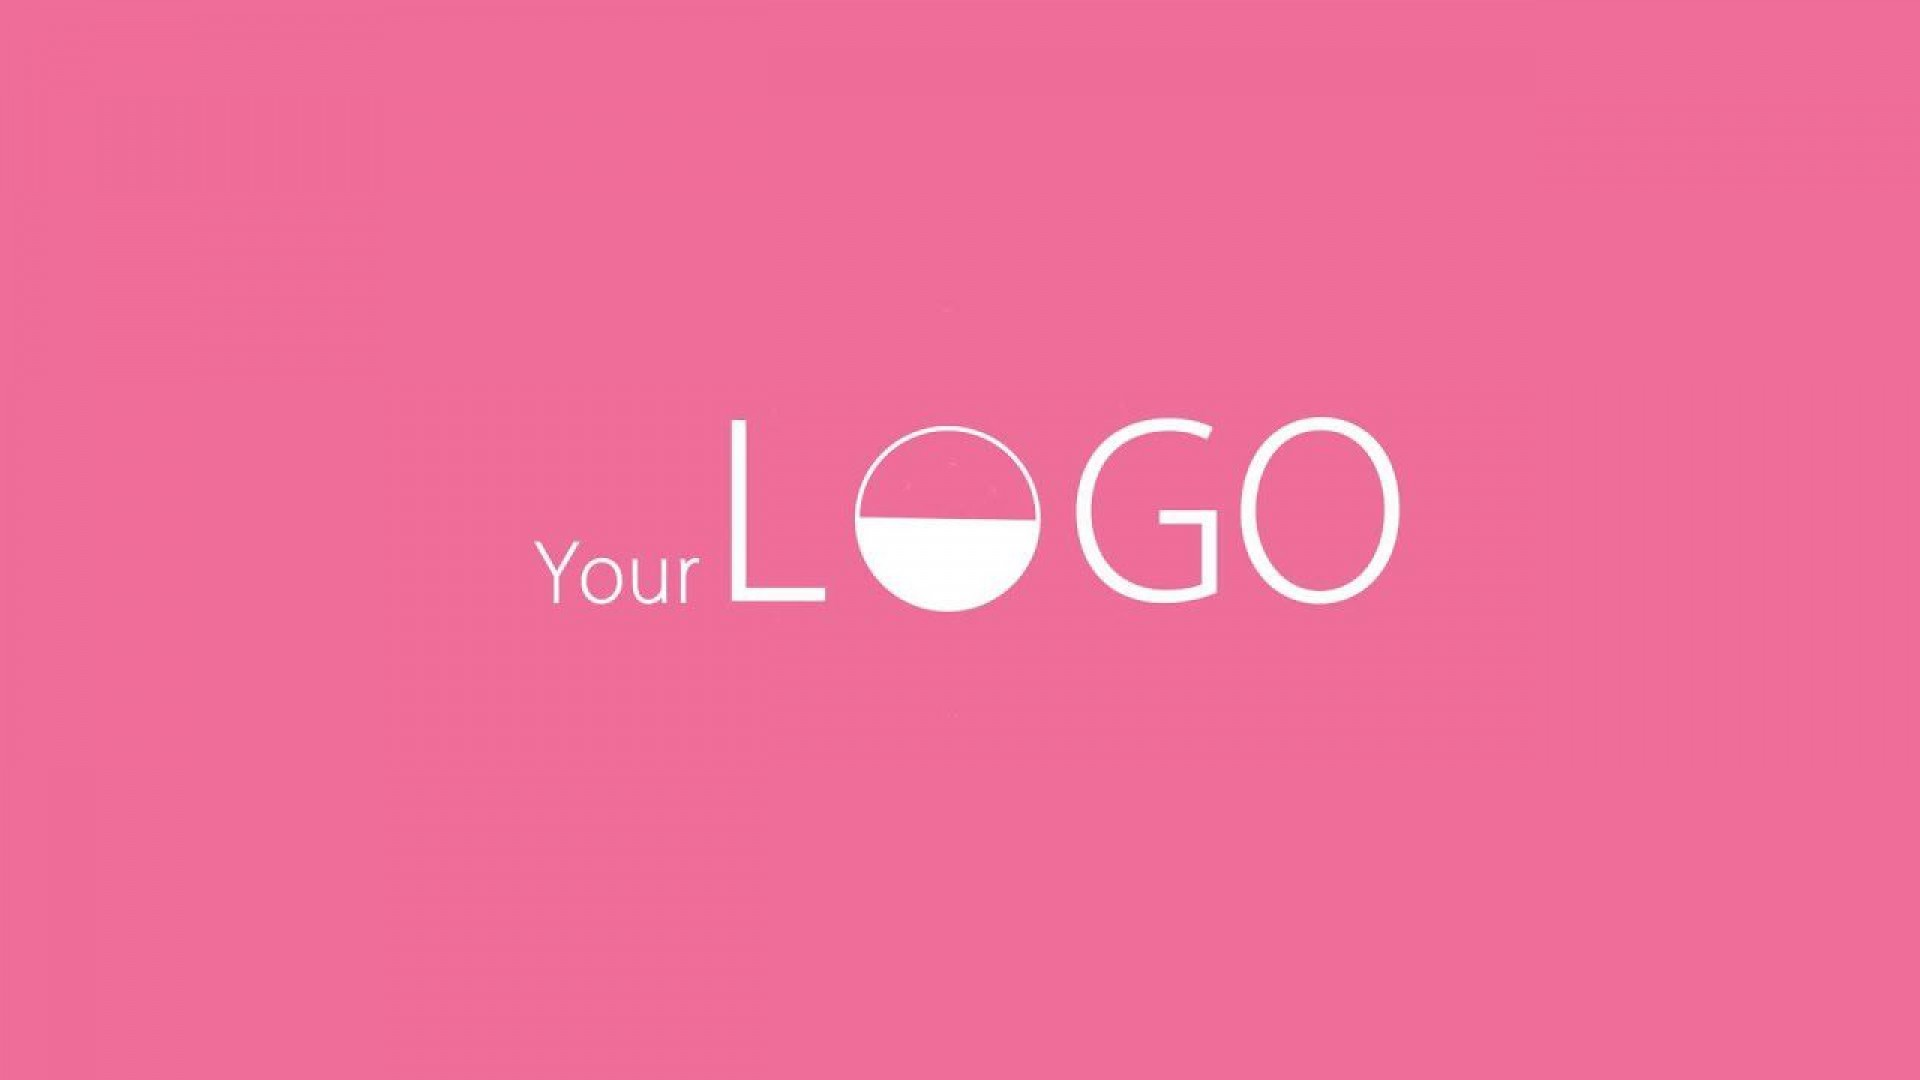 002 Striking After Effect Logo Animation Template Free Download Image  Photo Text 2d1920